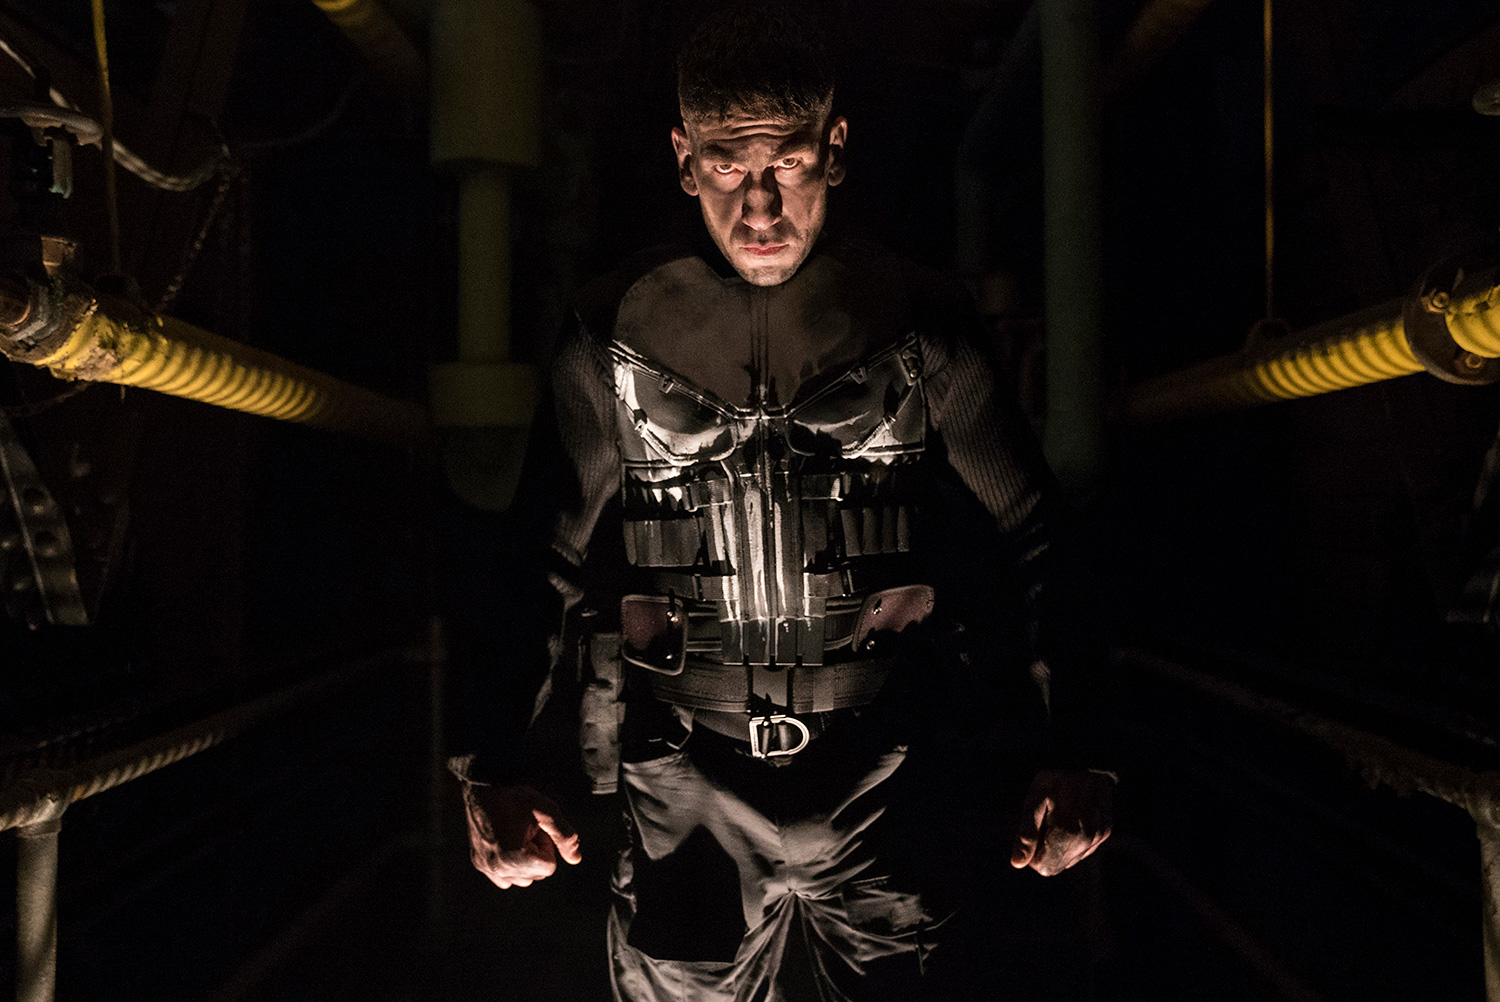 'The Punisher' Comes To Collect In the First Teaser Trailer